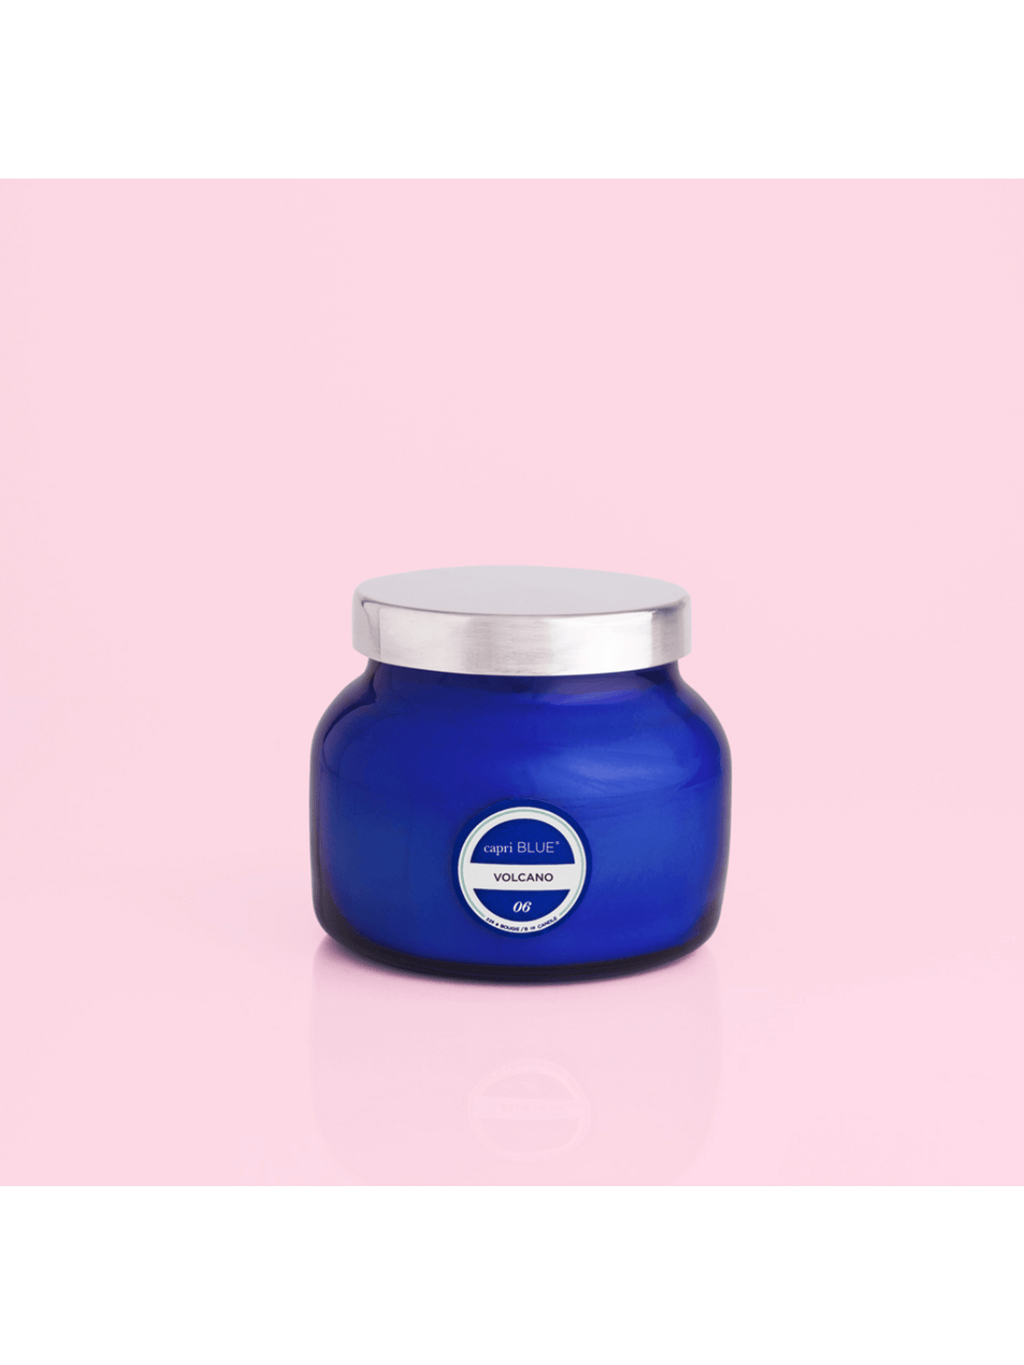 8oz Blue Volcano Candle